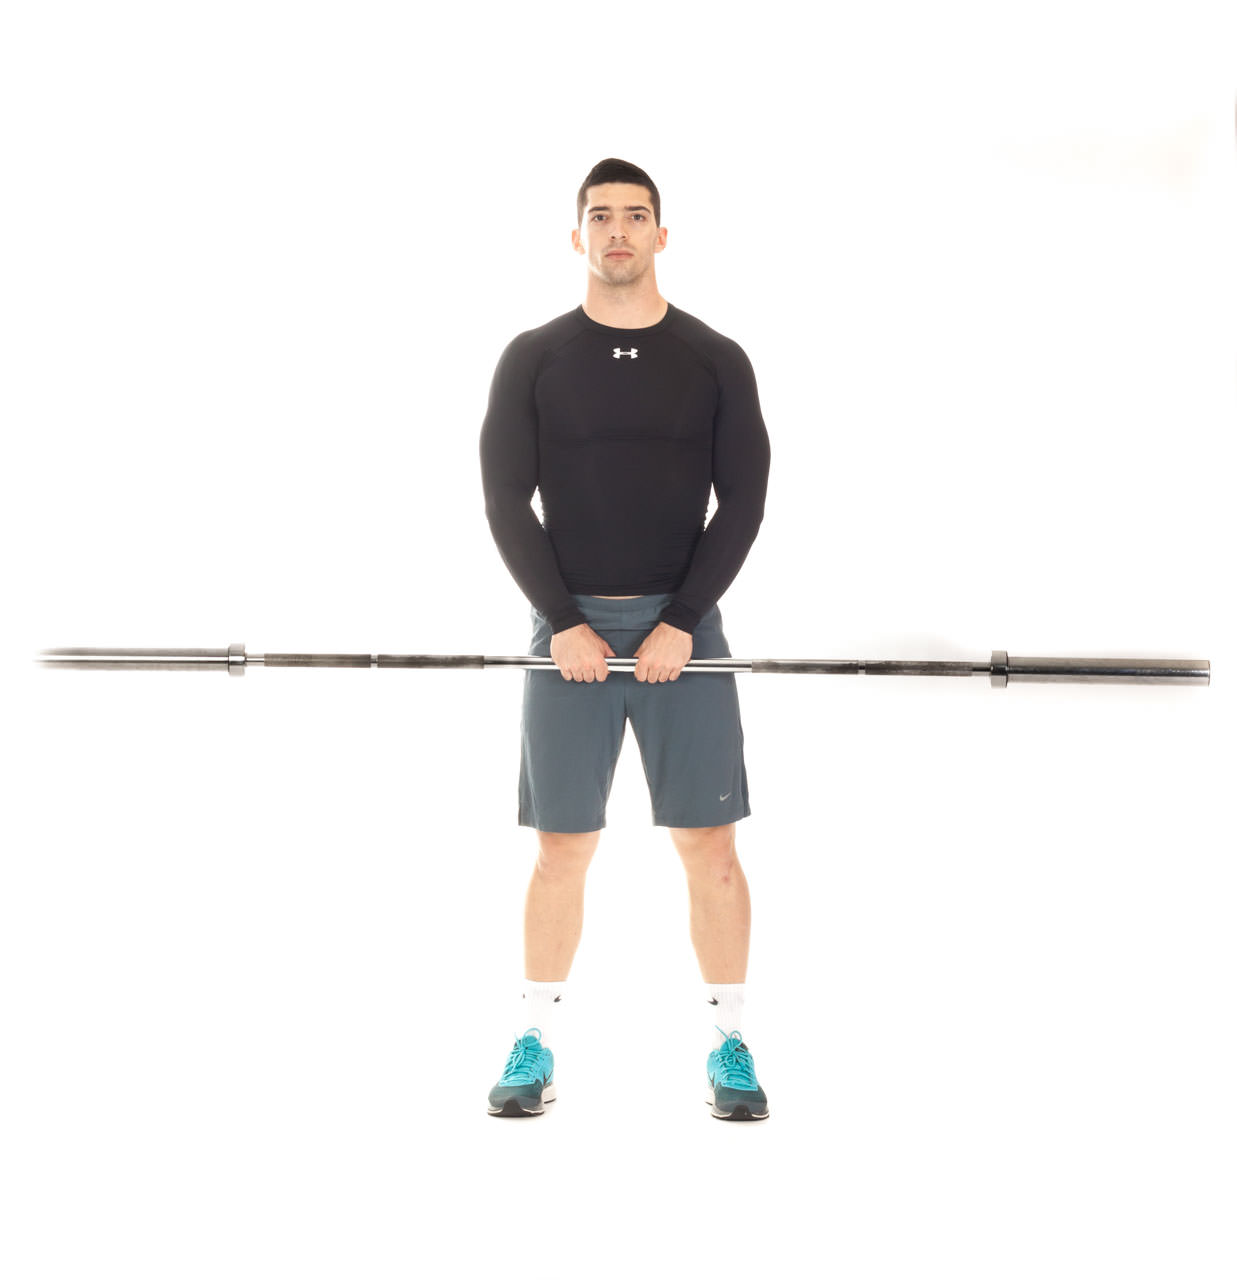 Close-Grip Upright Barbell Row frame #1